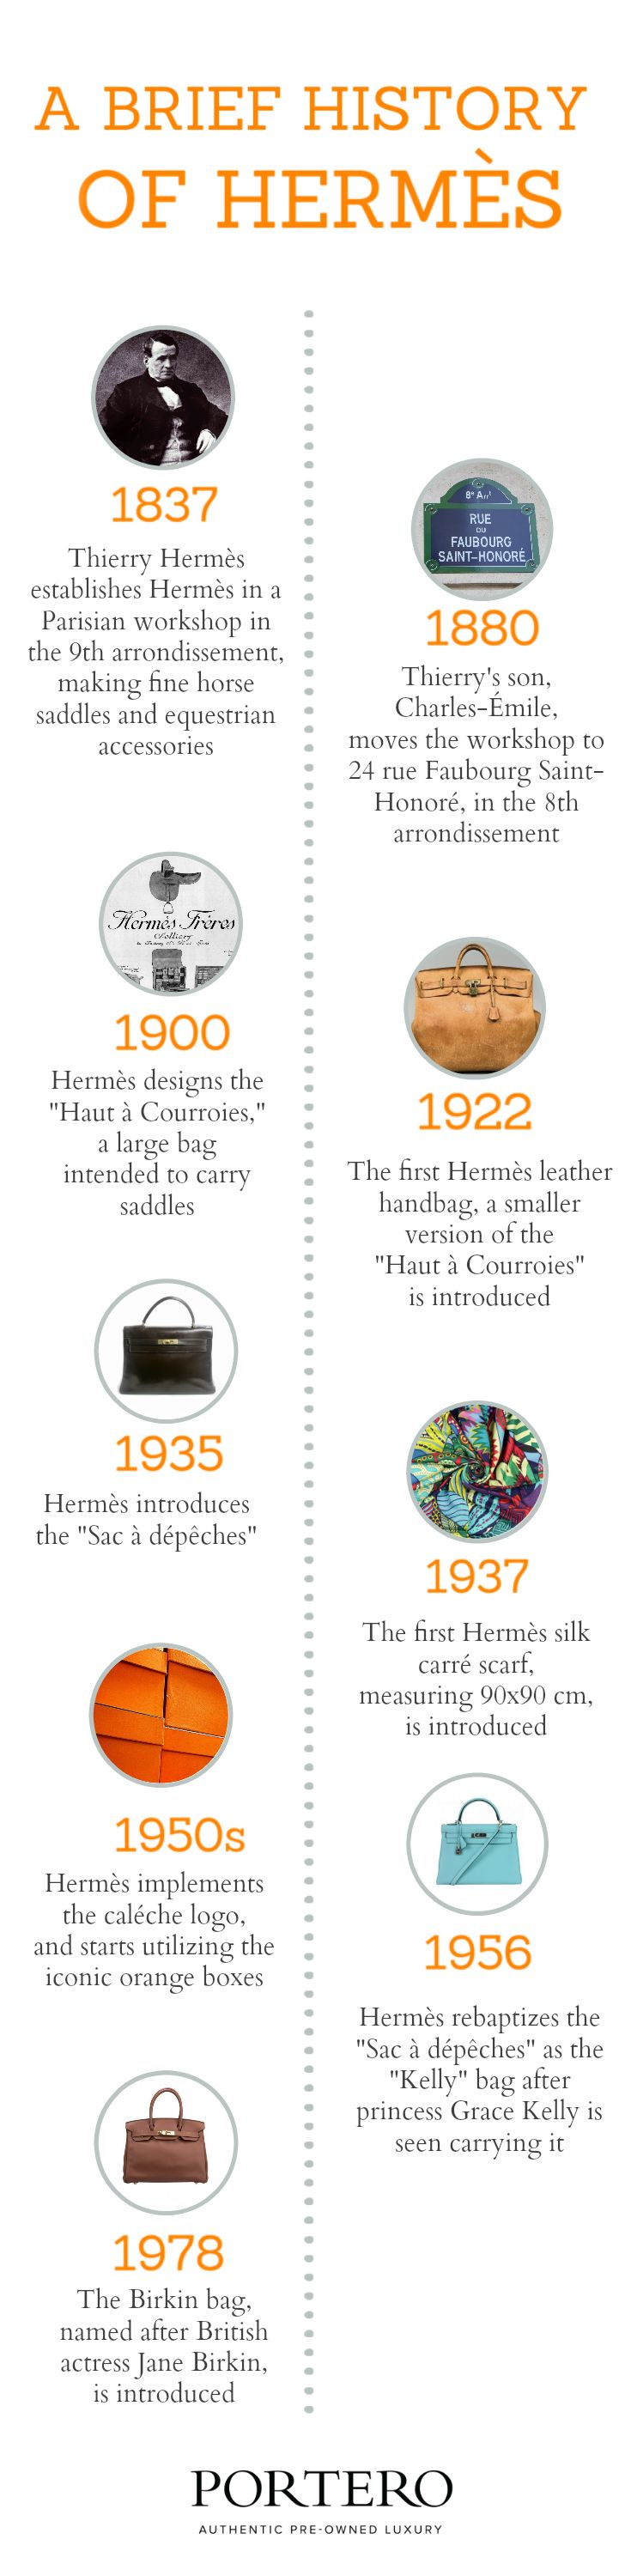 A Timeline of the History of Hermes:A Brief History of Hermès